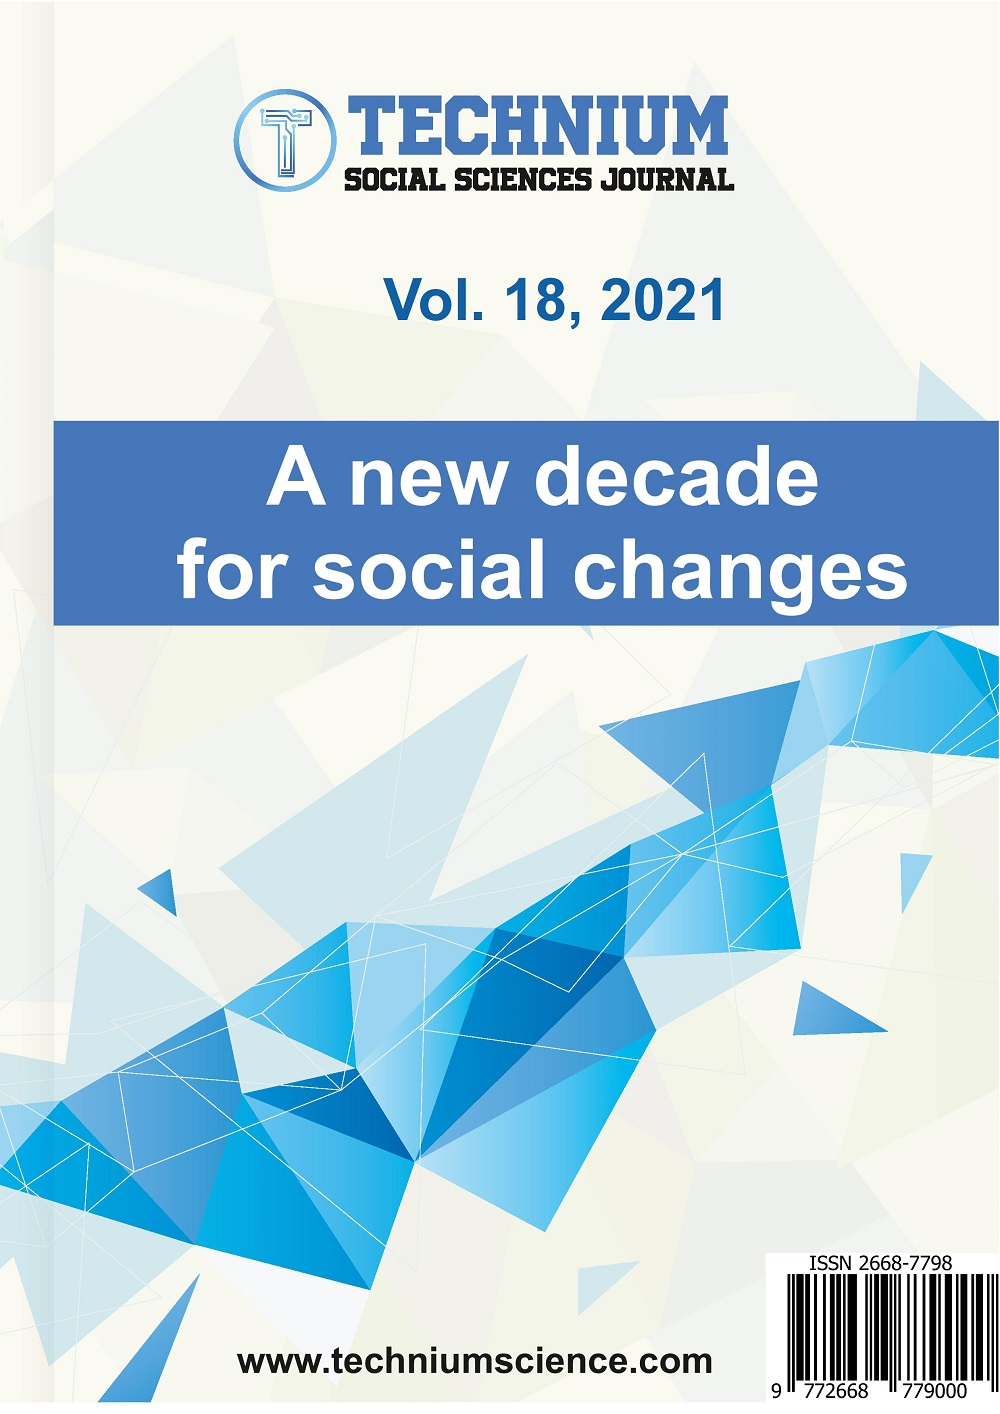 View Vol. 18 (2021): A new decade for social changes